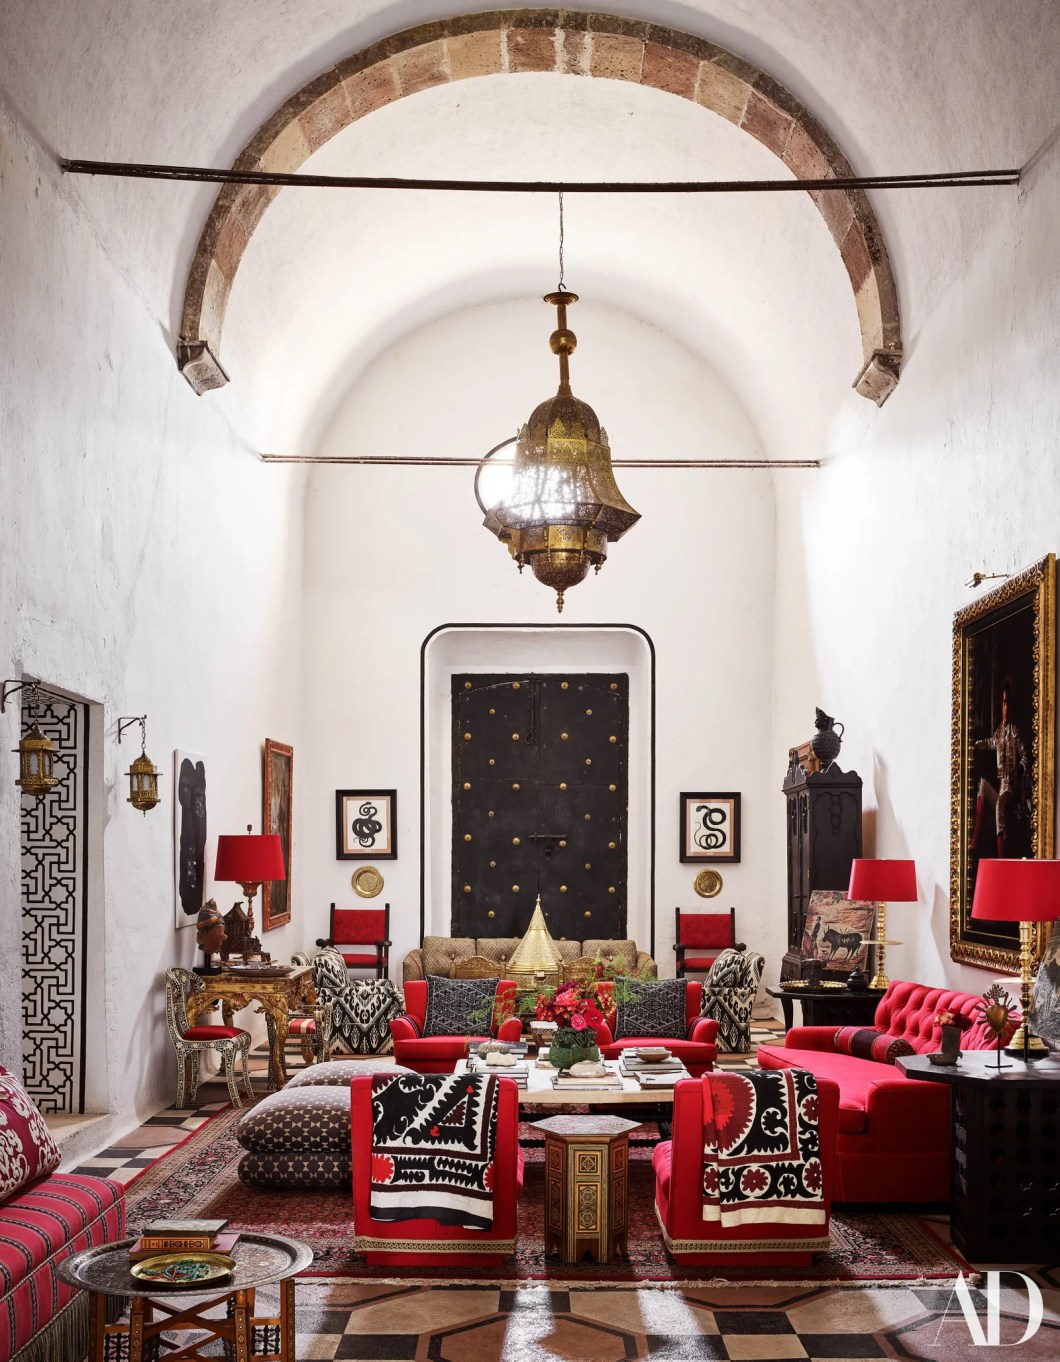 Travels Inspired Designer Michelle Nussbaumer's Family Getaway in San Miguel de Allende - The Moment Magazine - Culture Curated